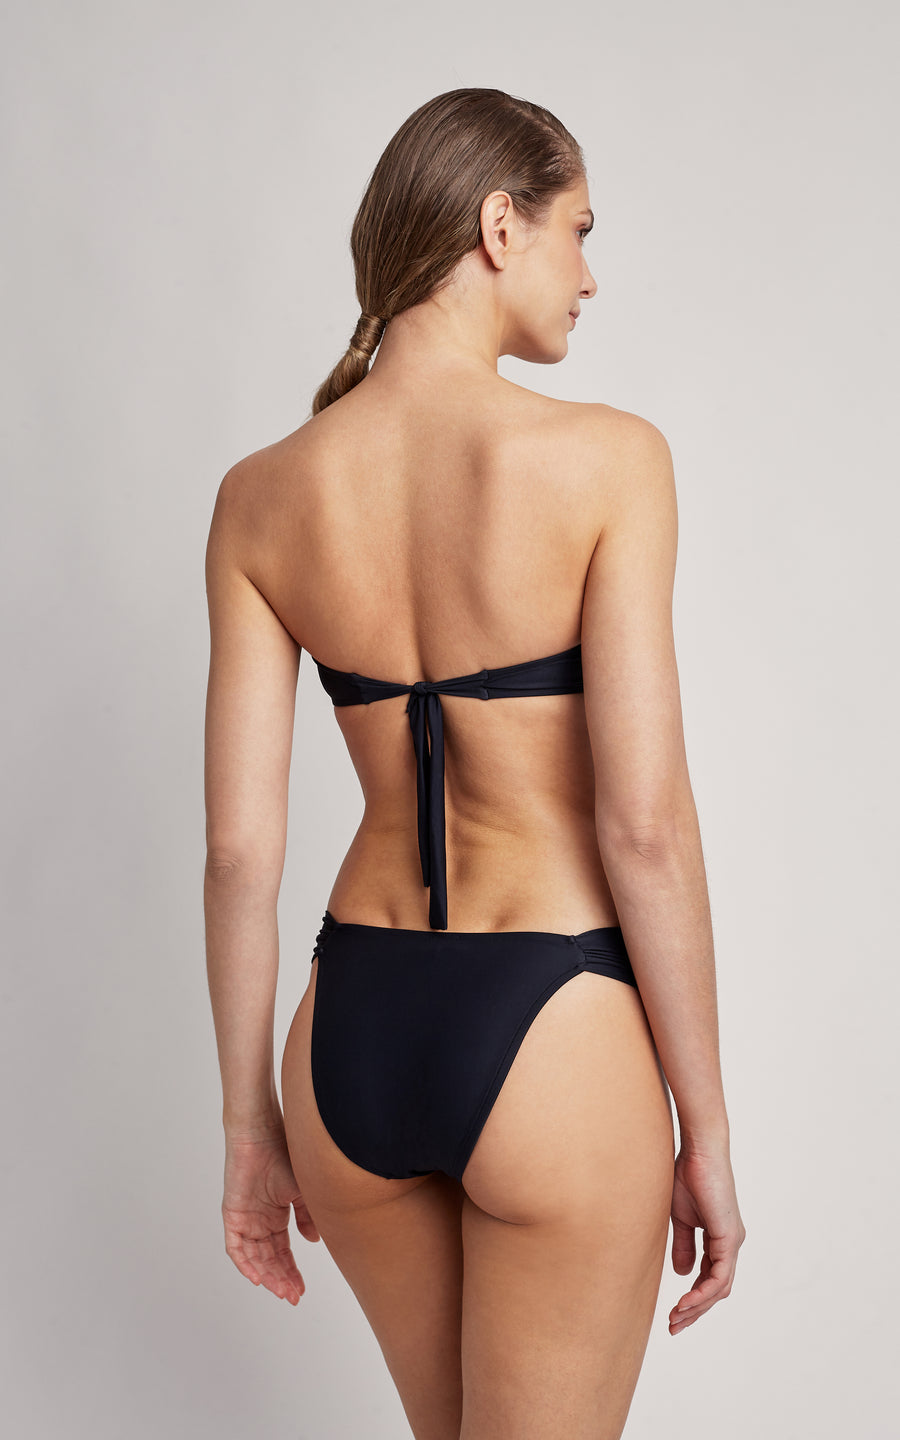 Black Bikini Embellished Bandeau Top and Draped Bottom